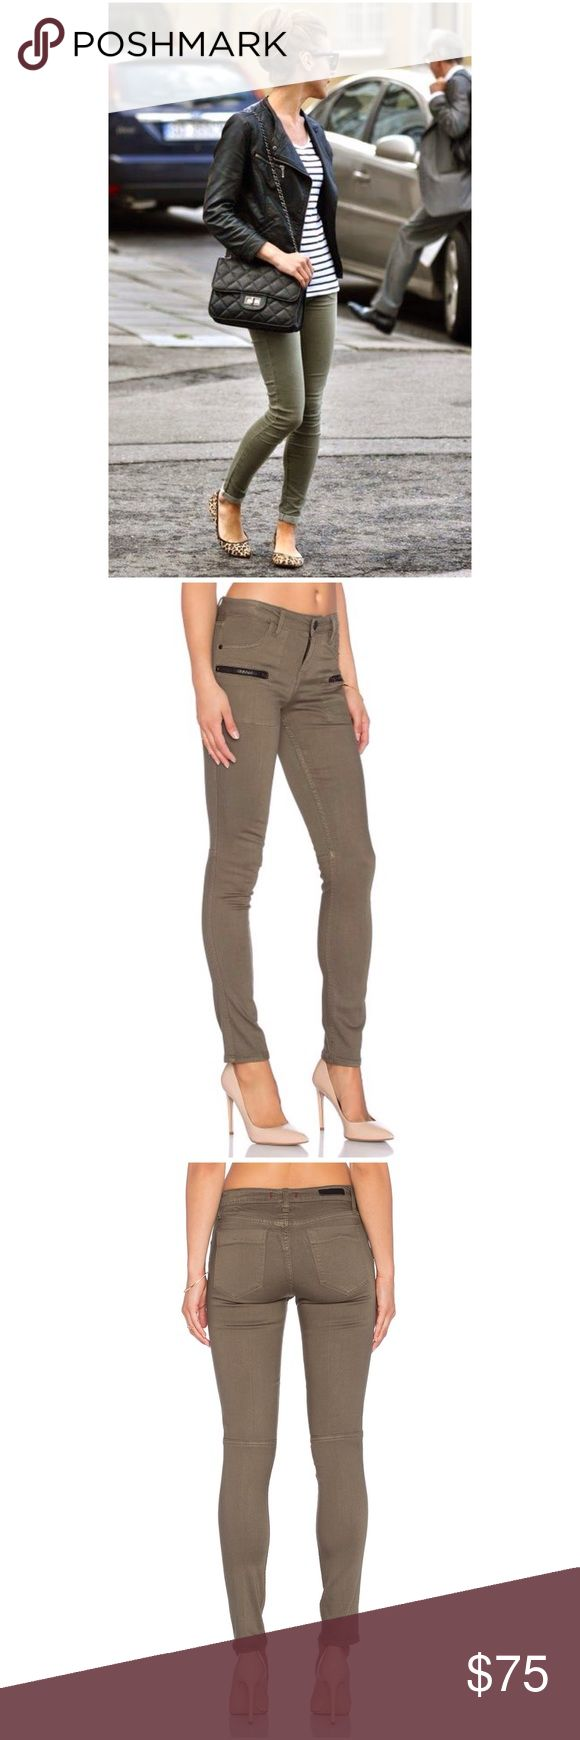 """🆕Sanctuary Ace Skinny Green Jeans Wash - Fatigue. 55% promodal , 43% cotton , 2% lycra. Decorative front zippers. 14"""" in the knee narrows to 10"""" at the leg opening.  9.5"""" rise, 29"""" inseam, 11"""" leg opening, based on a size 27. Color: green.       🚫No trades.  🚩Reasonable offers welcom. Sanctuary Jeans Skinny"""